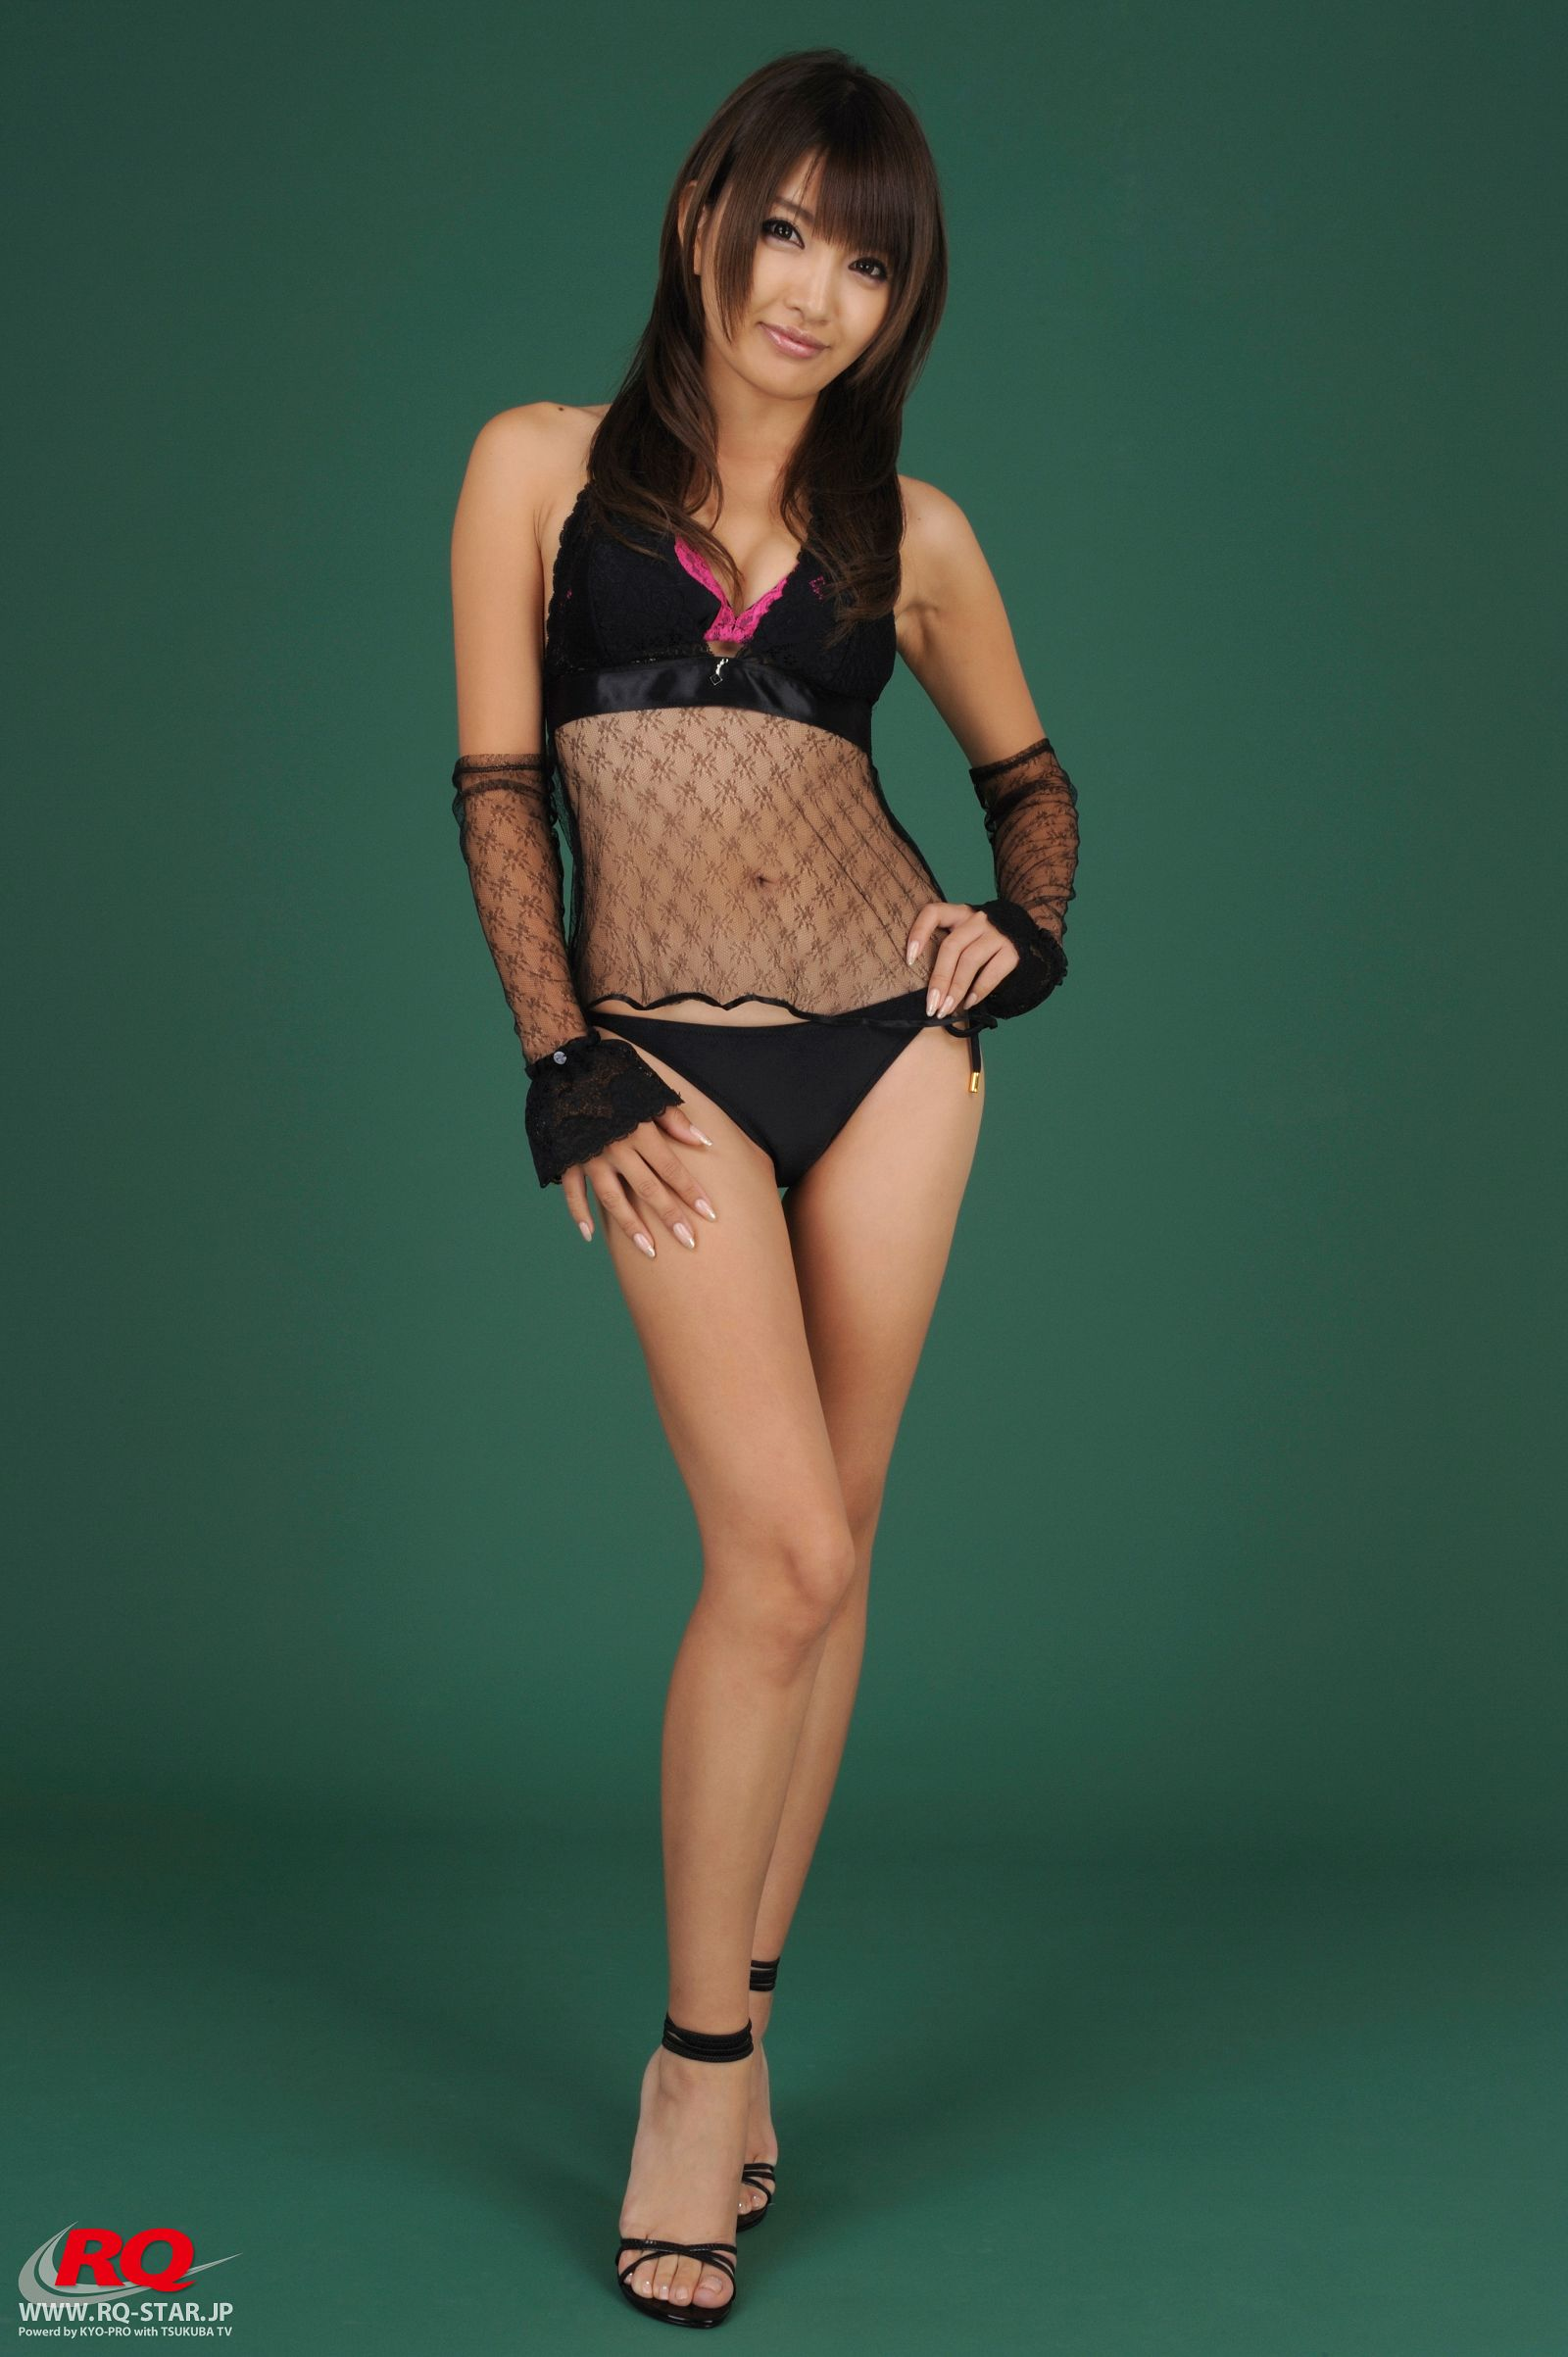 [RQ STAR美女] NO.0079 Chie Yamauchi 山內智恵 Swim Suits Black[118P] RQ STAR 第1张